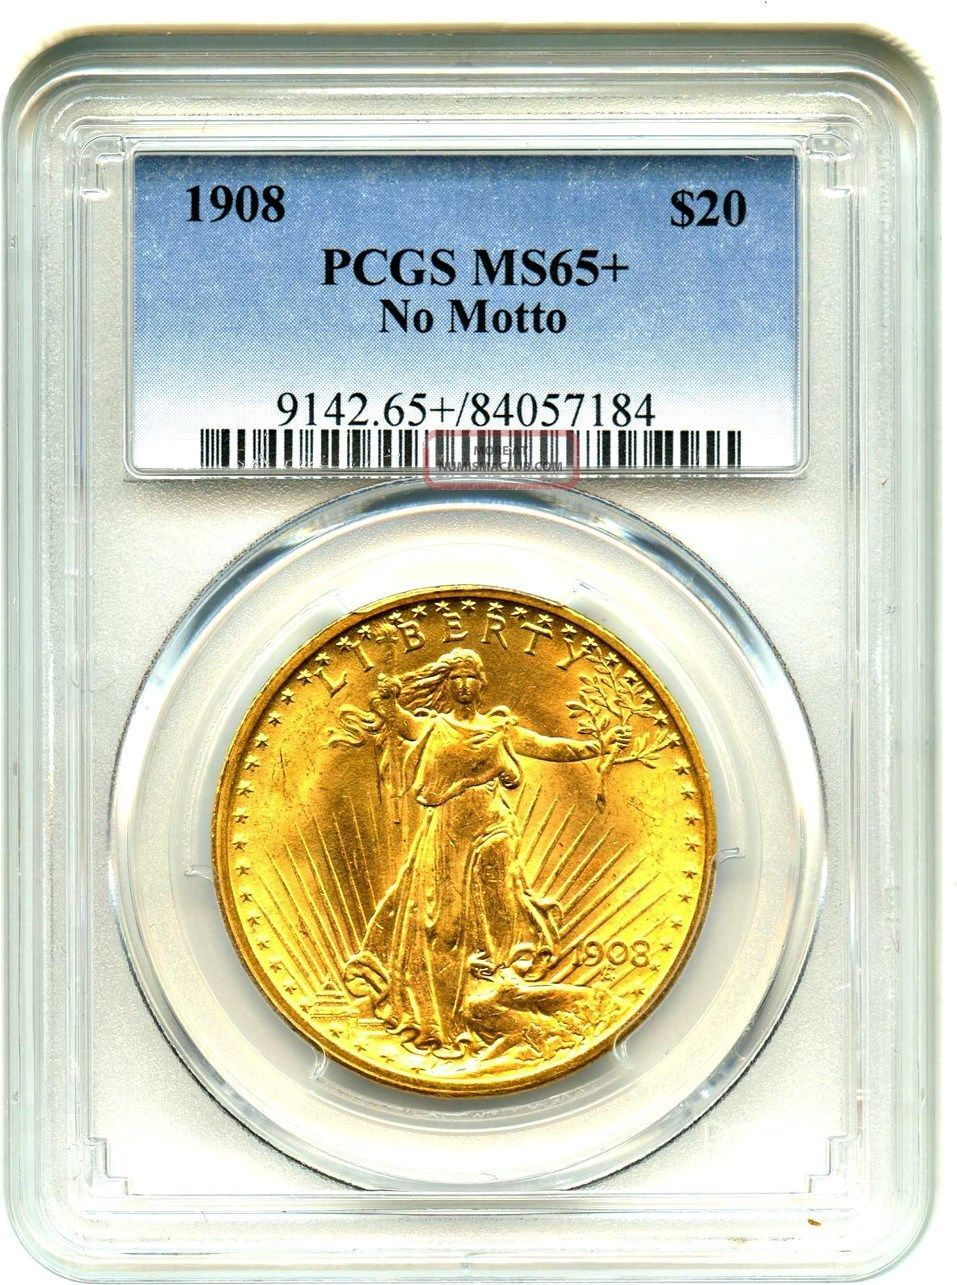 1908 $20 Pcgs Ms65,  (no Motto) Gold Type Coin - Gold Type Coin Gold photo